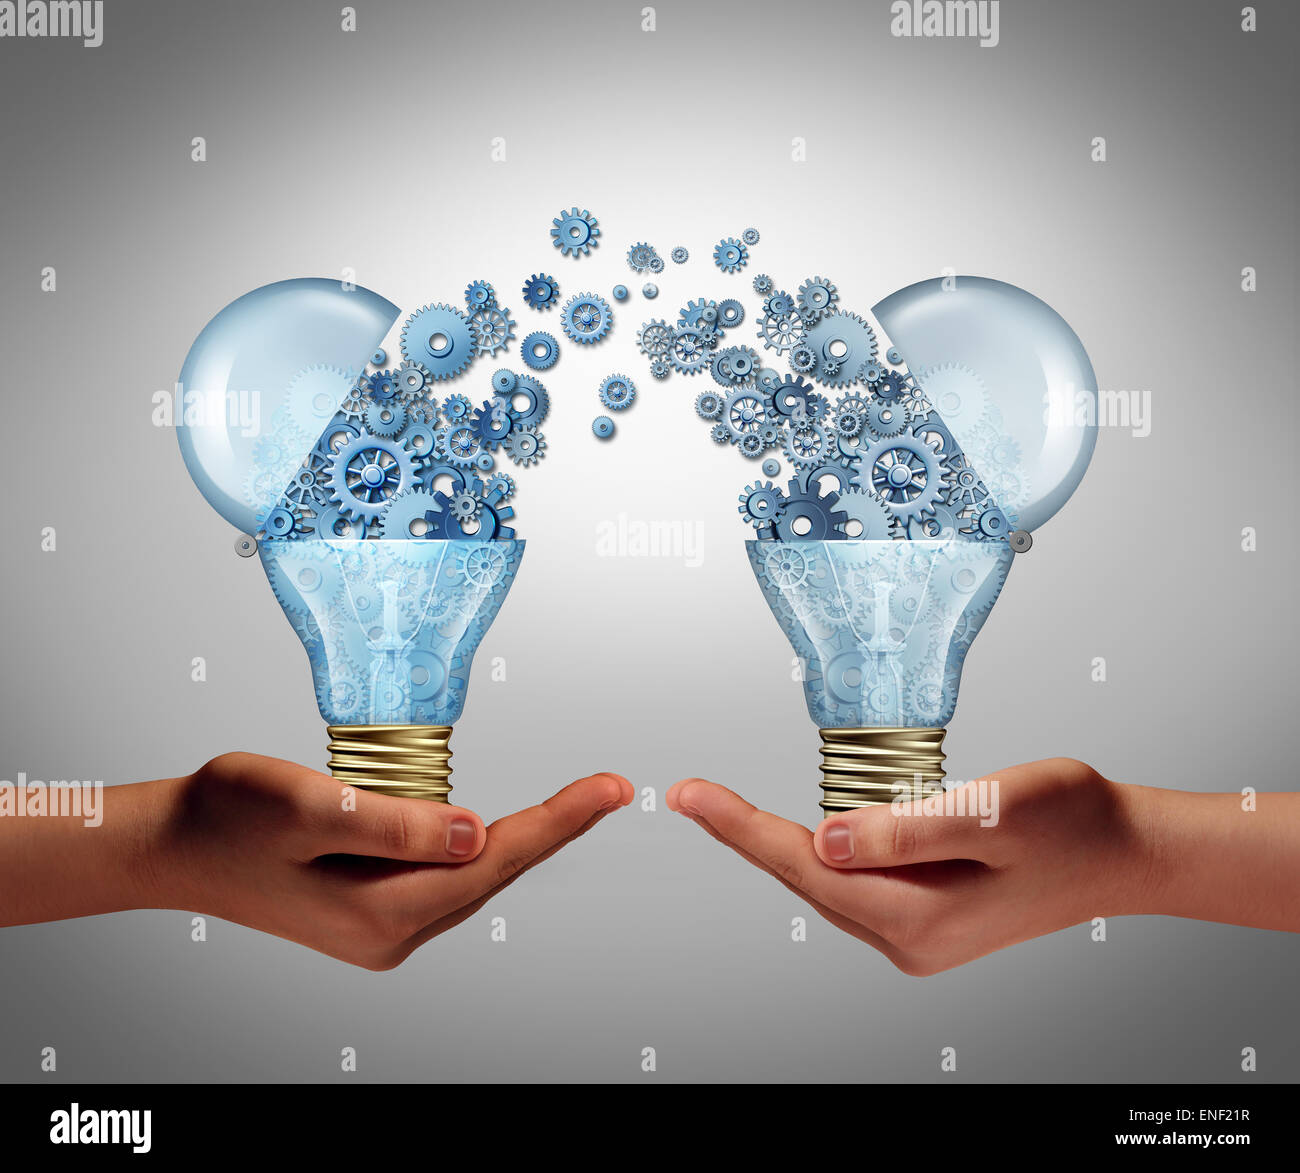 Ideas agreement Investing in business innovation concept and financial commerce backing of creativity as an open - Stock Image